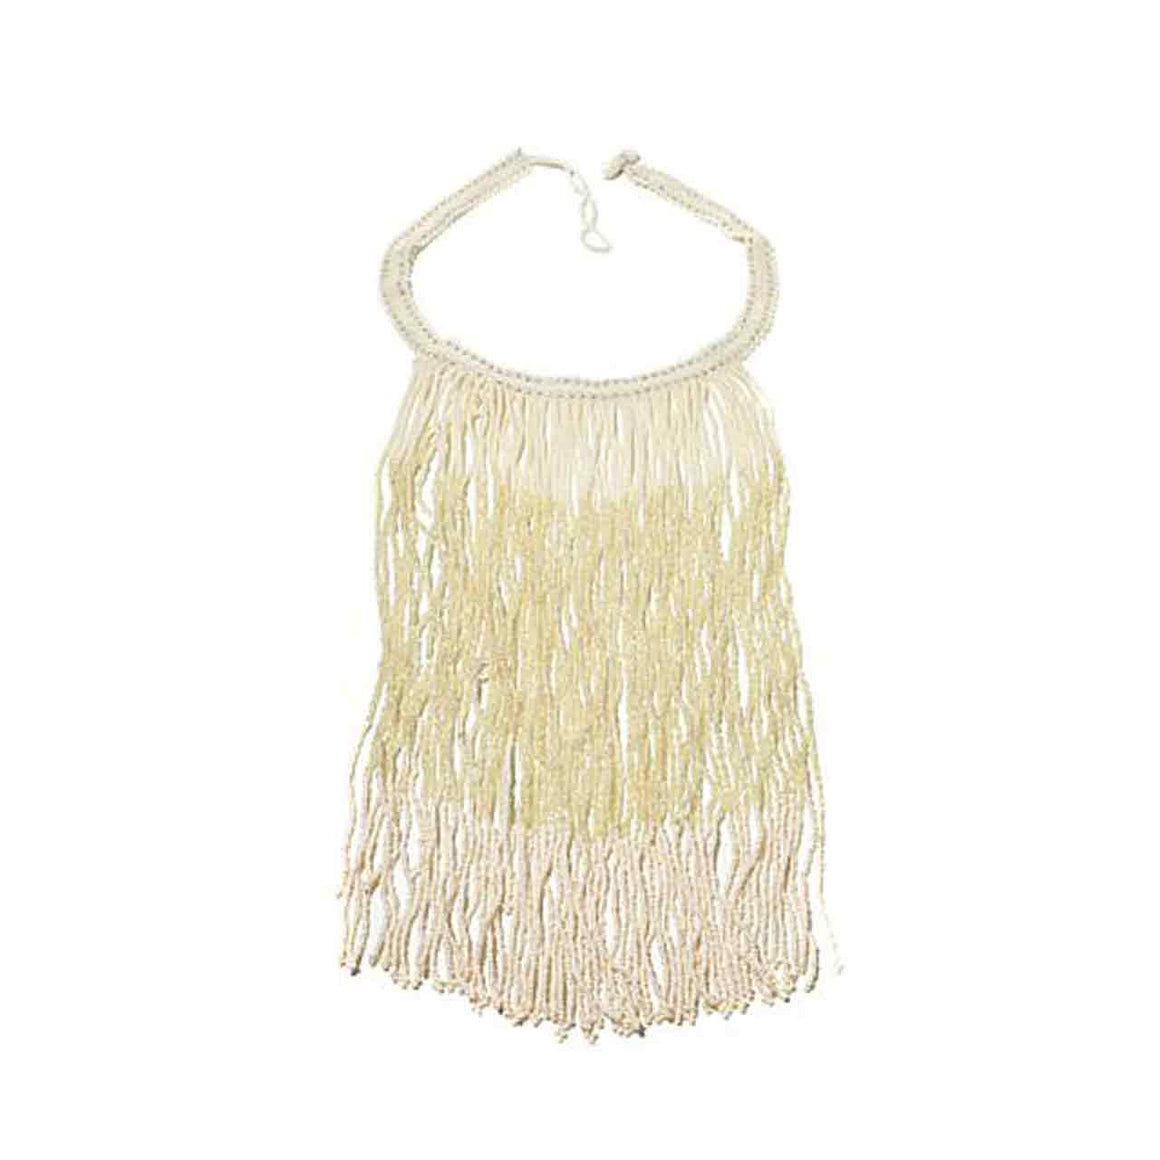 Cream Colour Potay Fringe Necklace